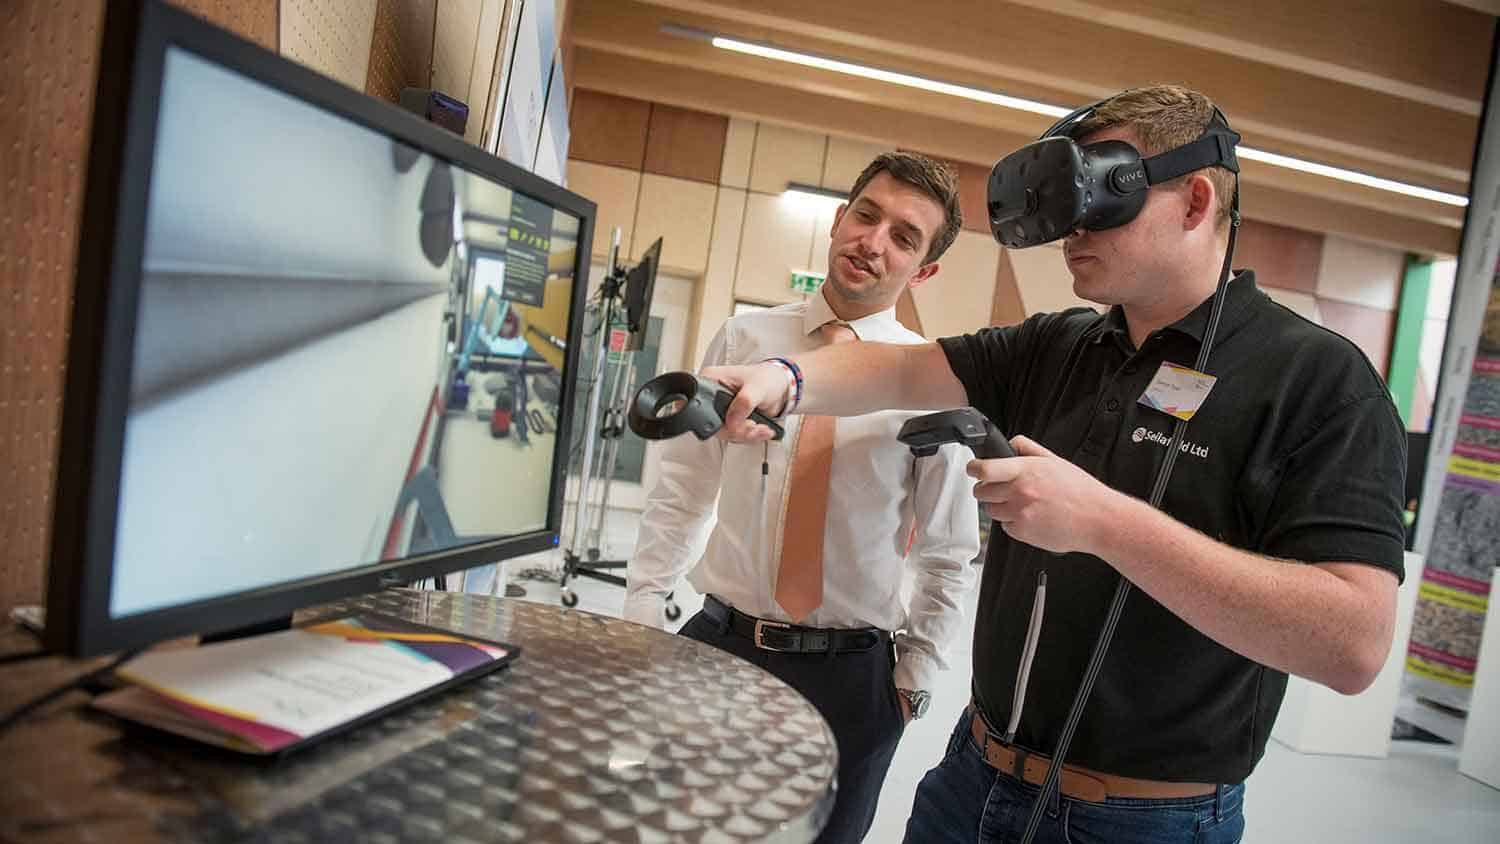 Someone being shown by a salesman a VR headset and controllers